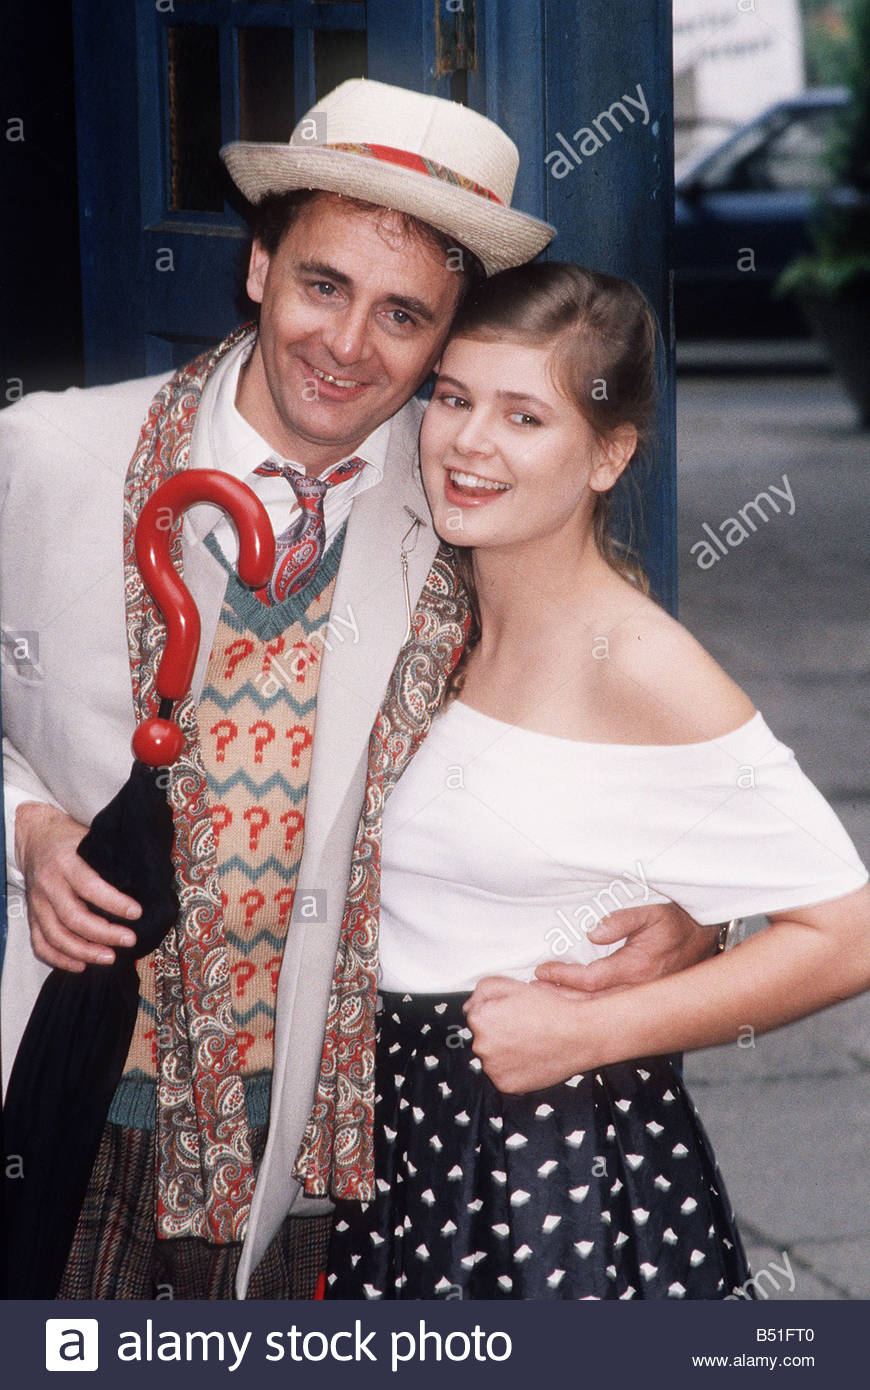 actress-sophie-aldred-who-played-the-companion-ace-next-to-doctor-B51FT0.jpg